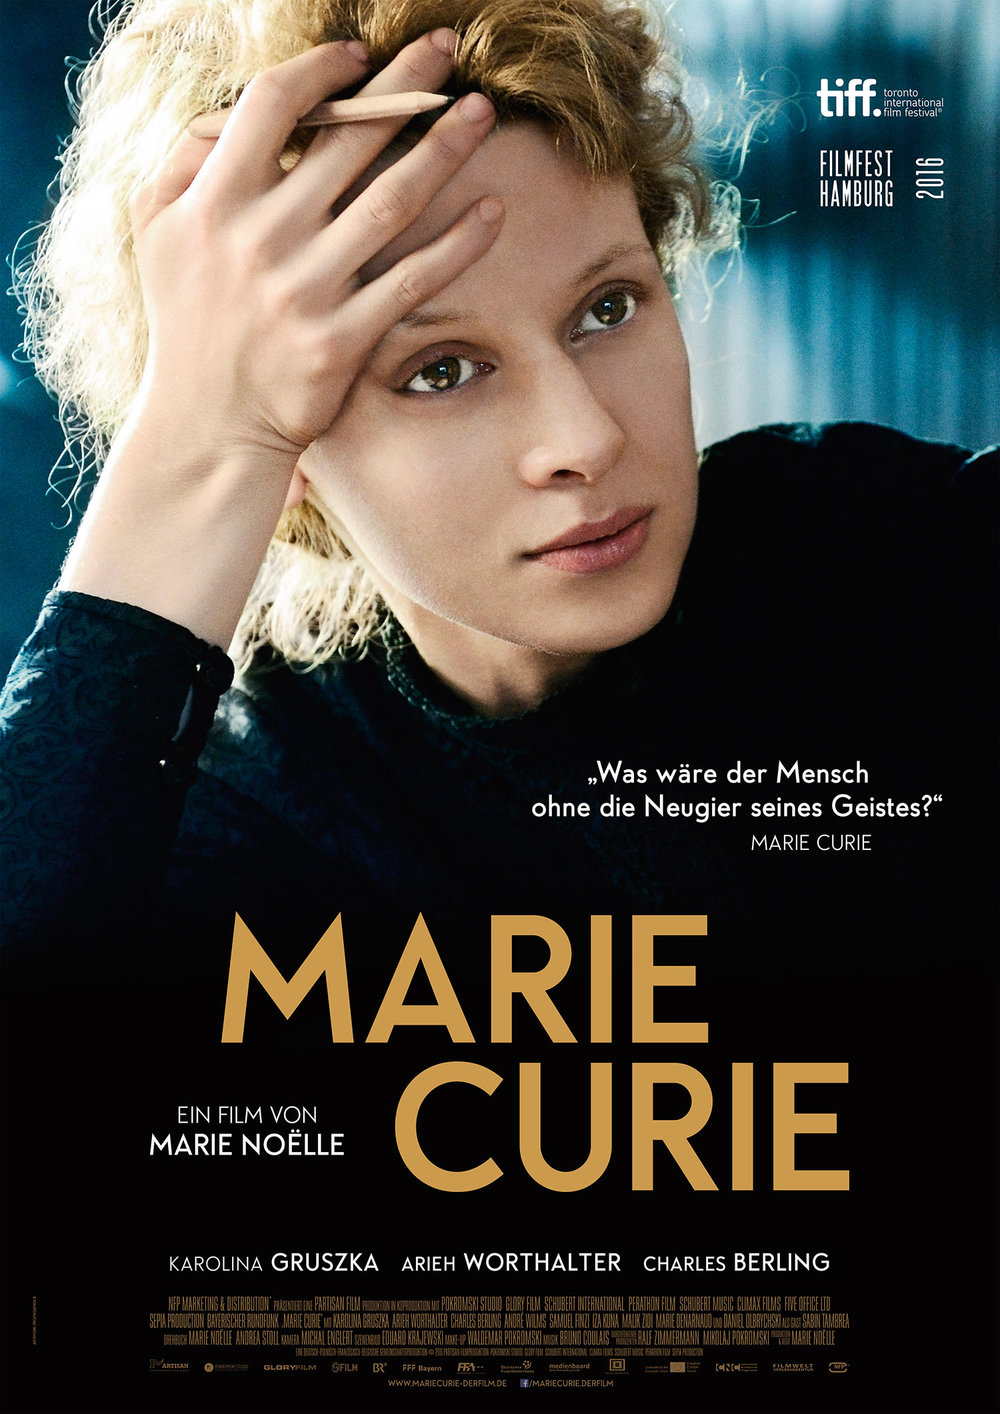 "NFP*<a href=""/marie-curie"">→</a><strong>Kreation</strong>"